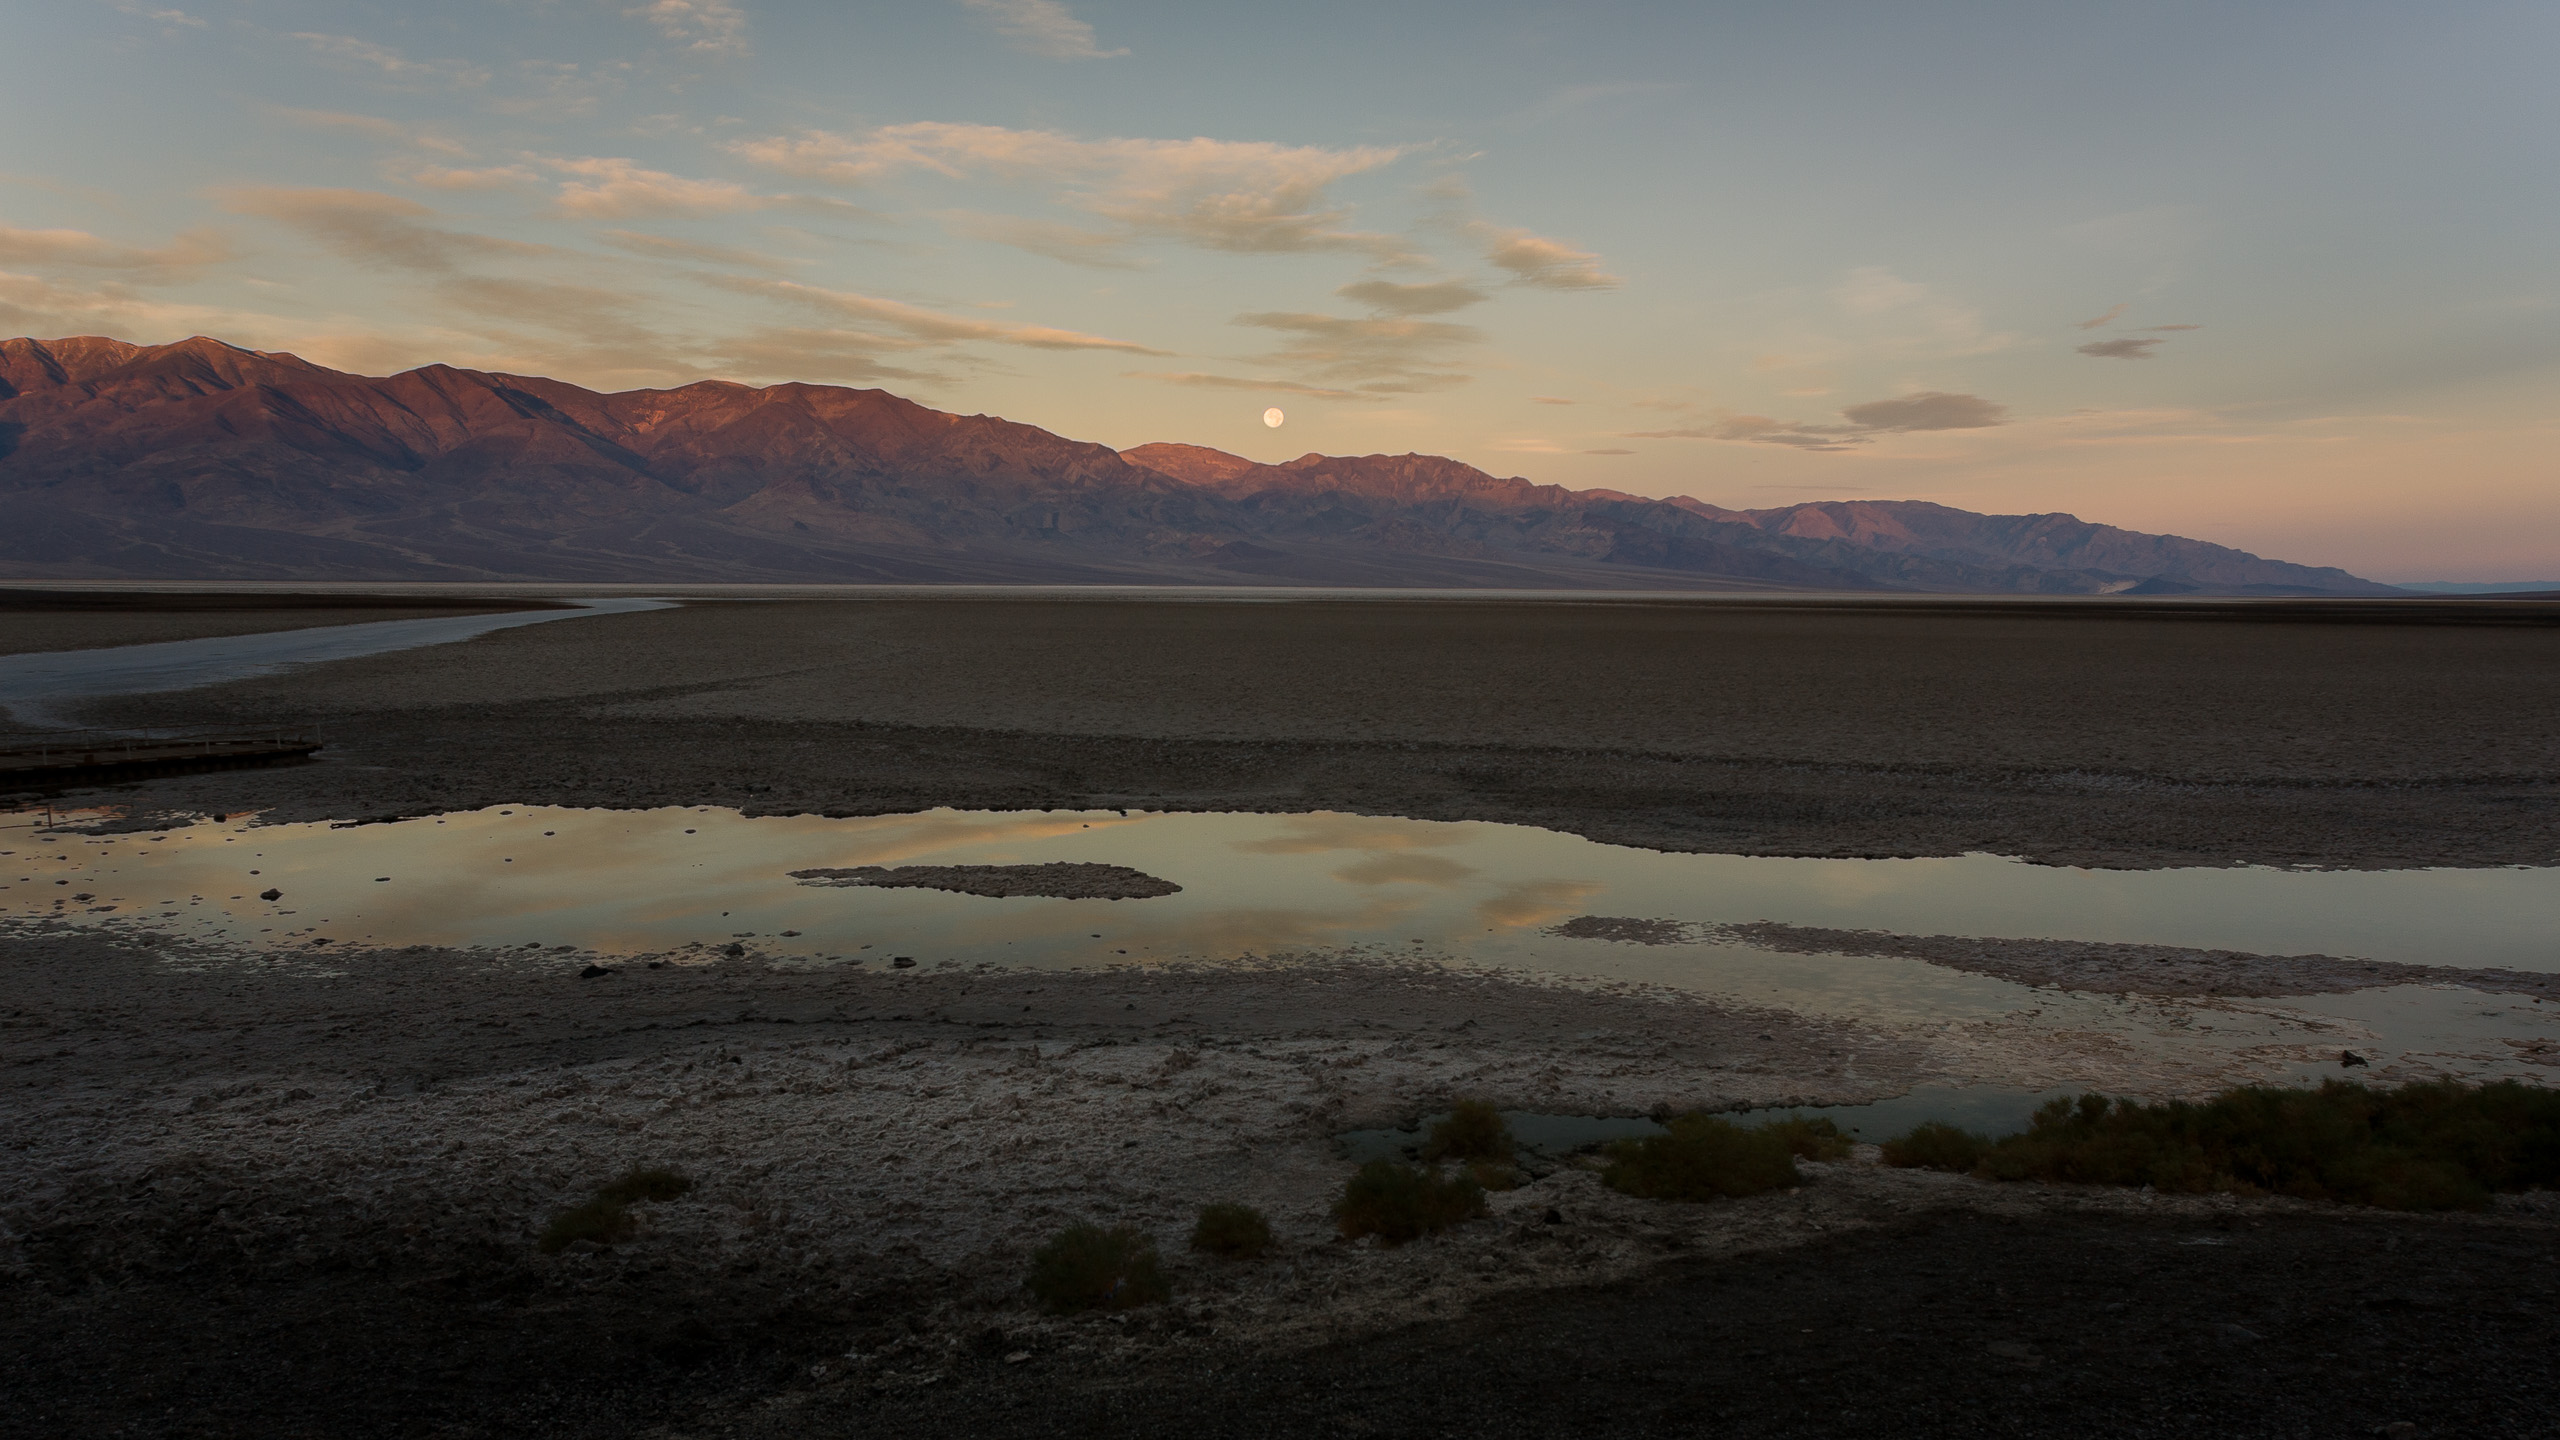 Sunrise and moonset over Badwater Basin, -282 ft elevation, Death Valley, California.